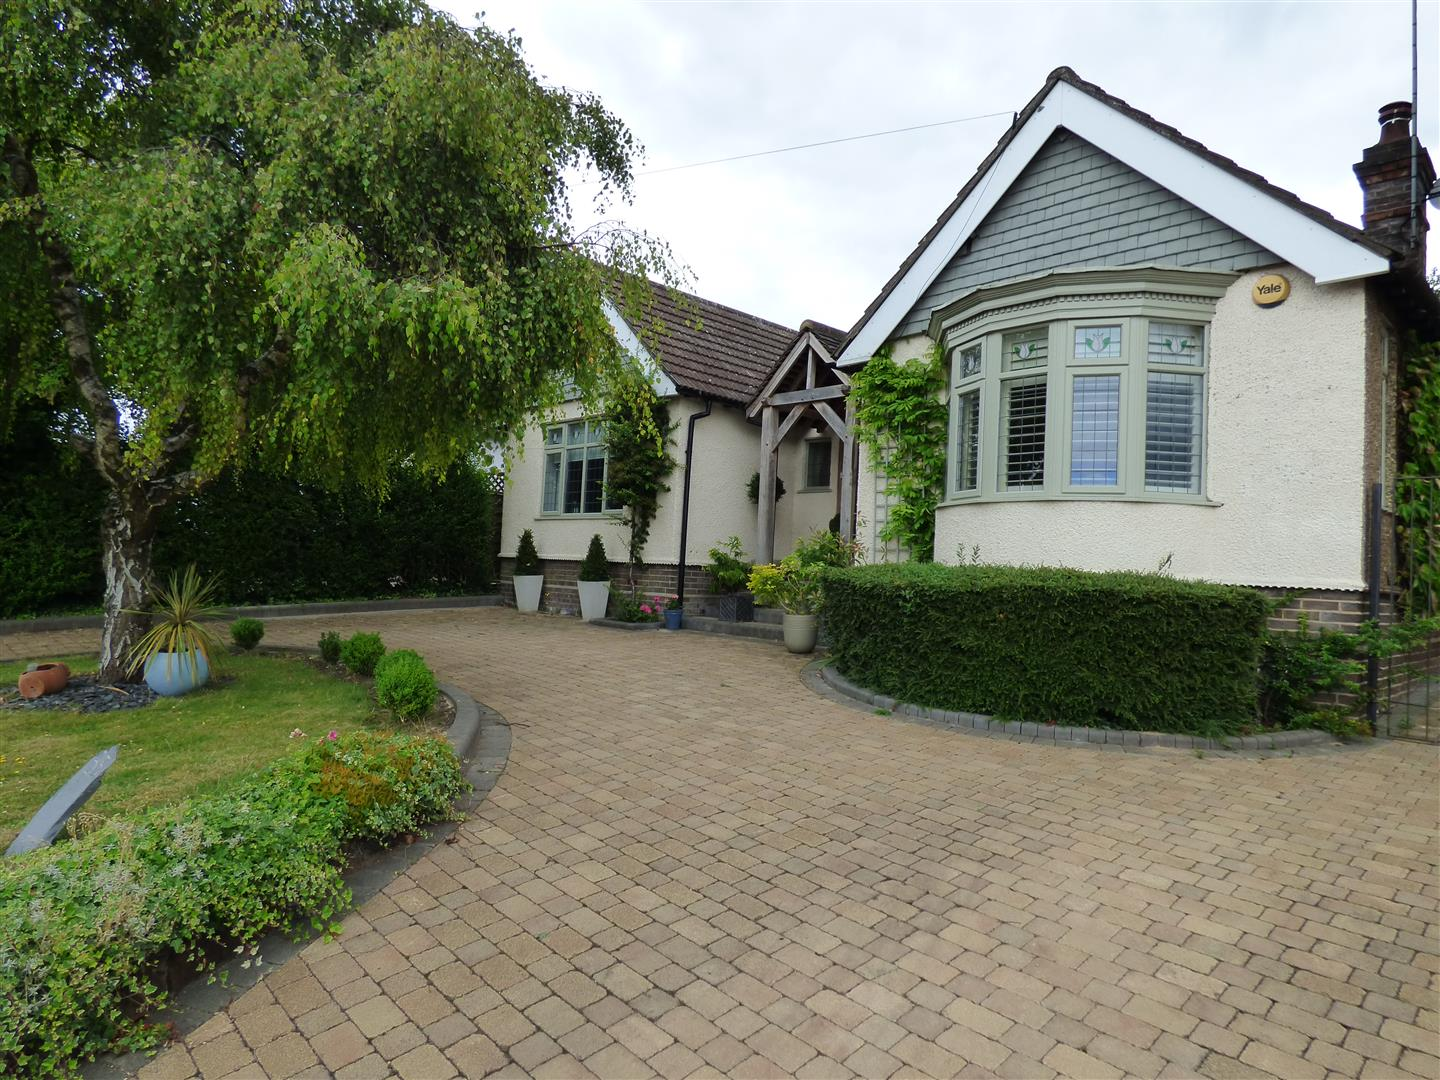 3 Bedrooms Property for sale in Tring Road, Dunstable